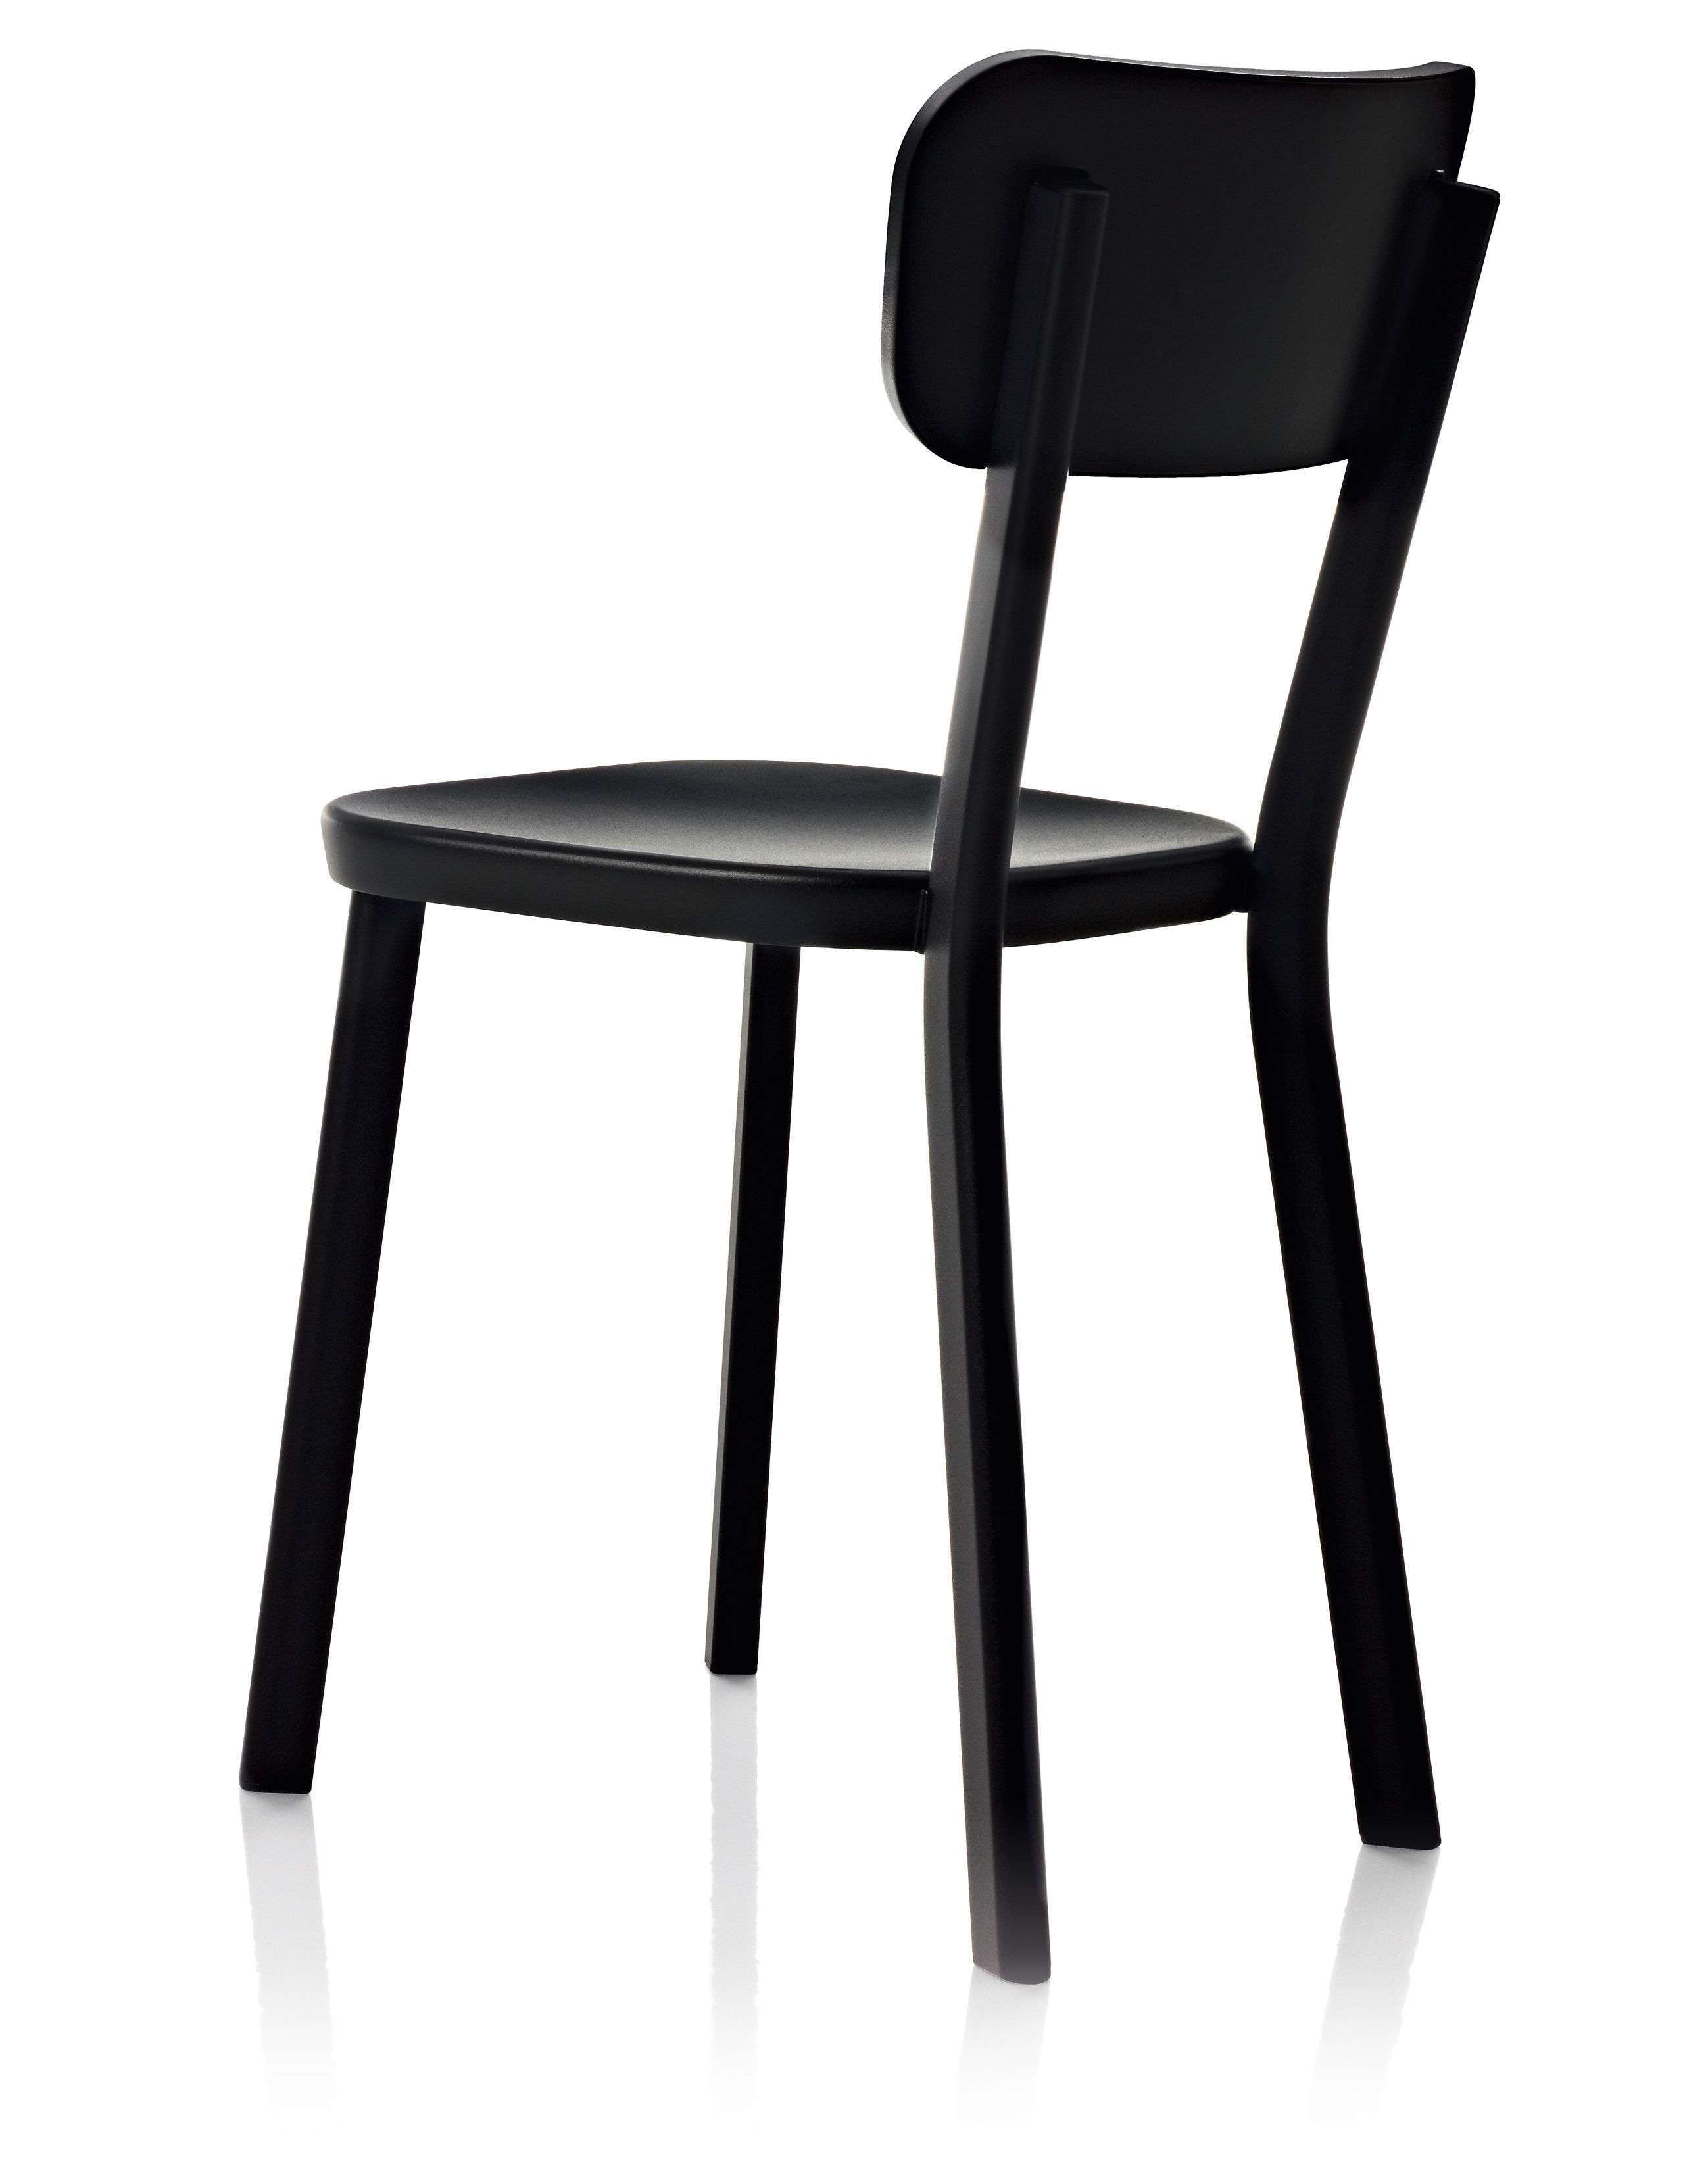 Furniture - Chairs - Déjà-vu Chair - Varnished metal by Magis - Black - Varnished aluminium